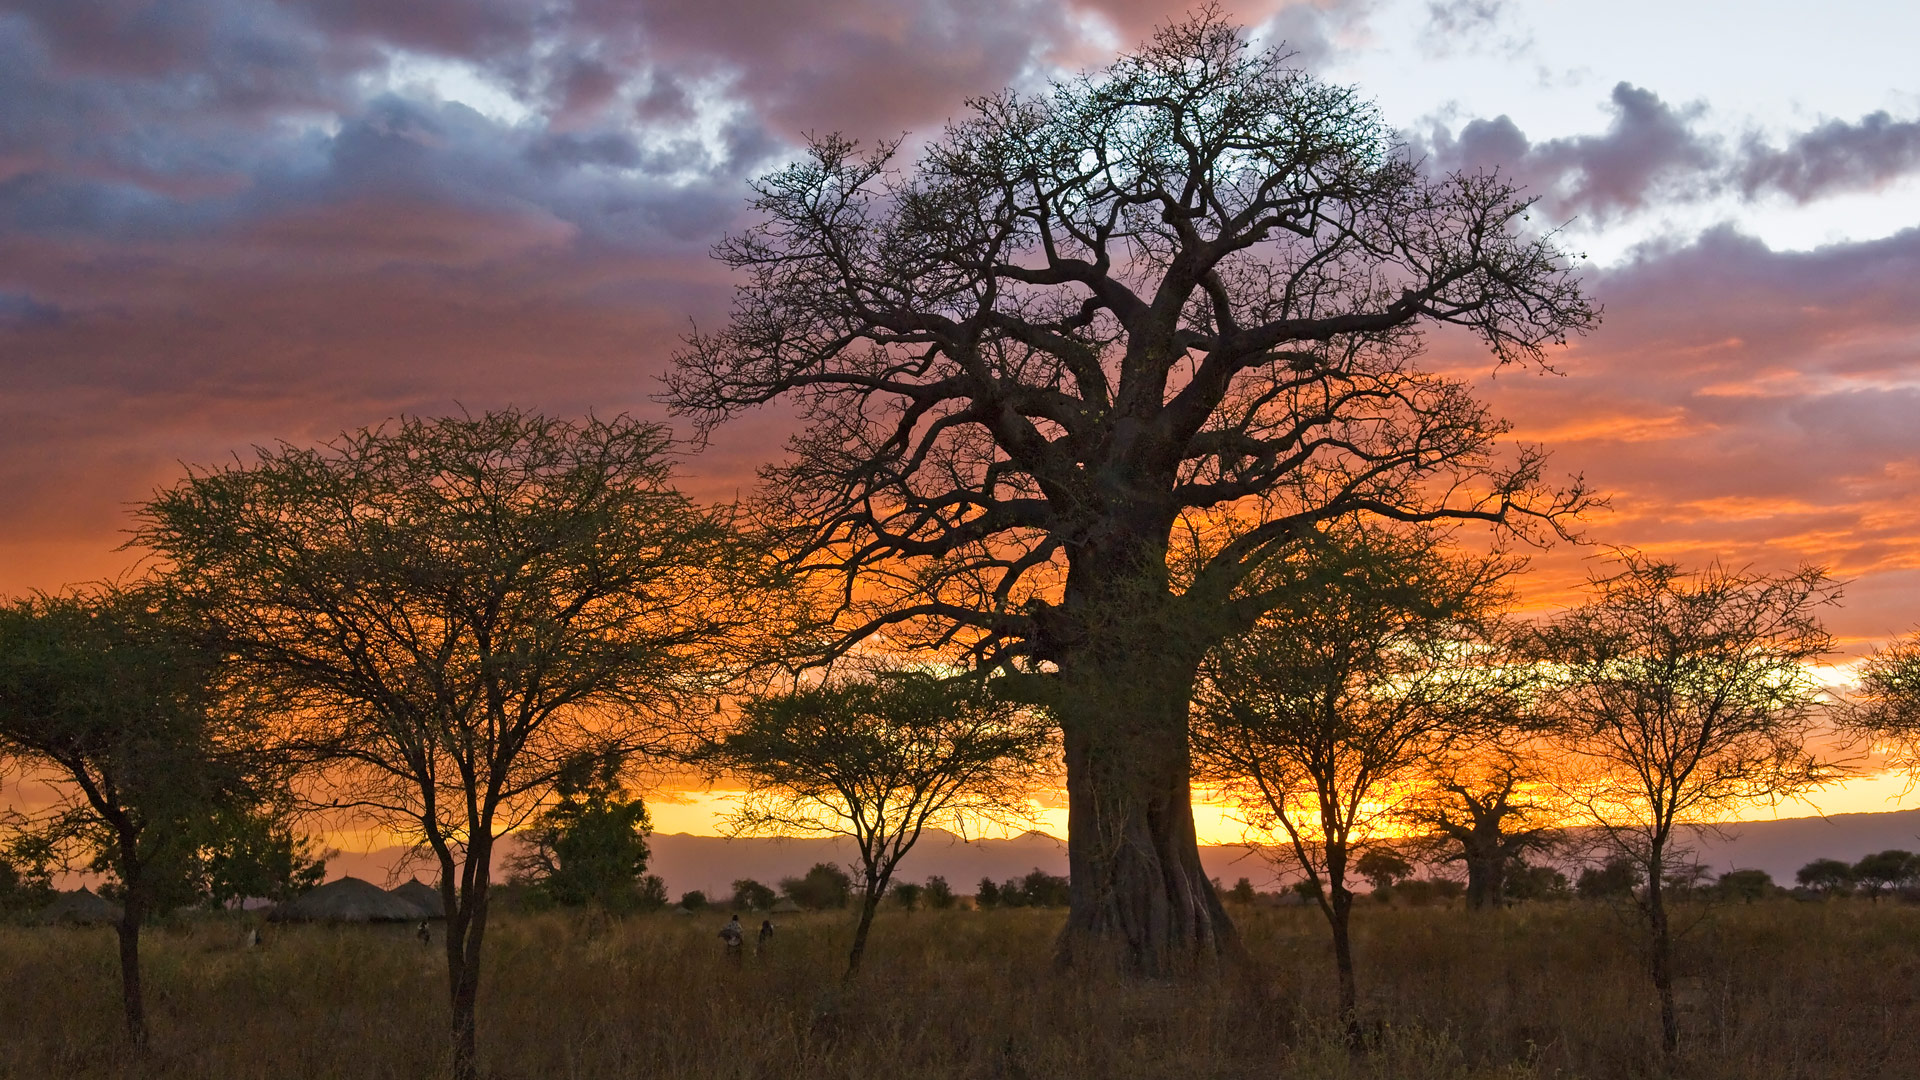 Sunset with baobab tree and Maasai huts in background, Tanzania.